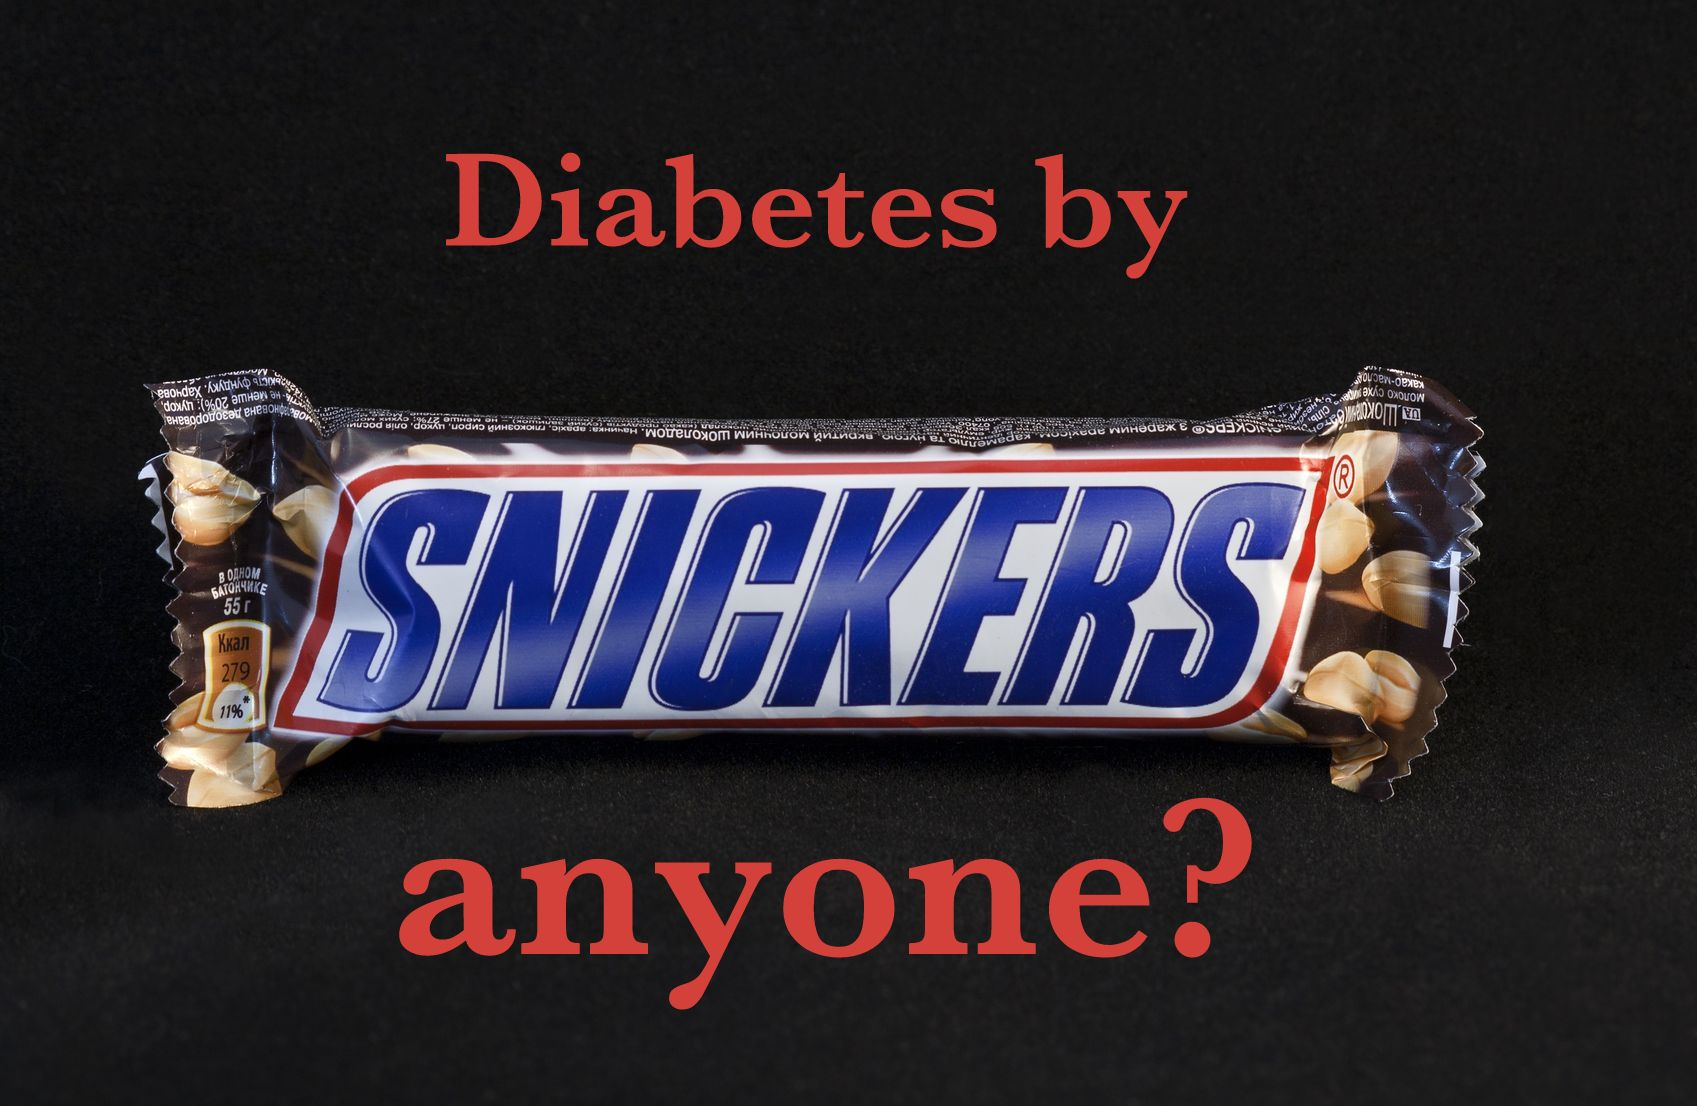 Robin Williams Snickers Ads are Bad for Your Health